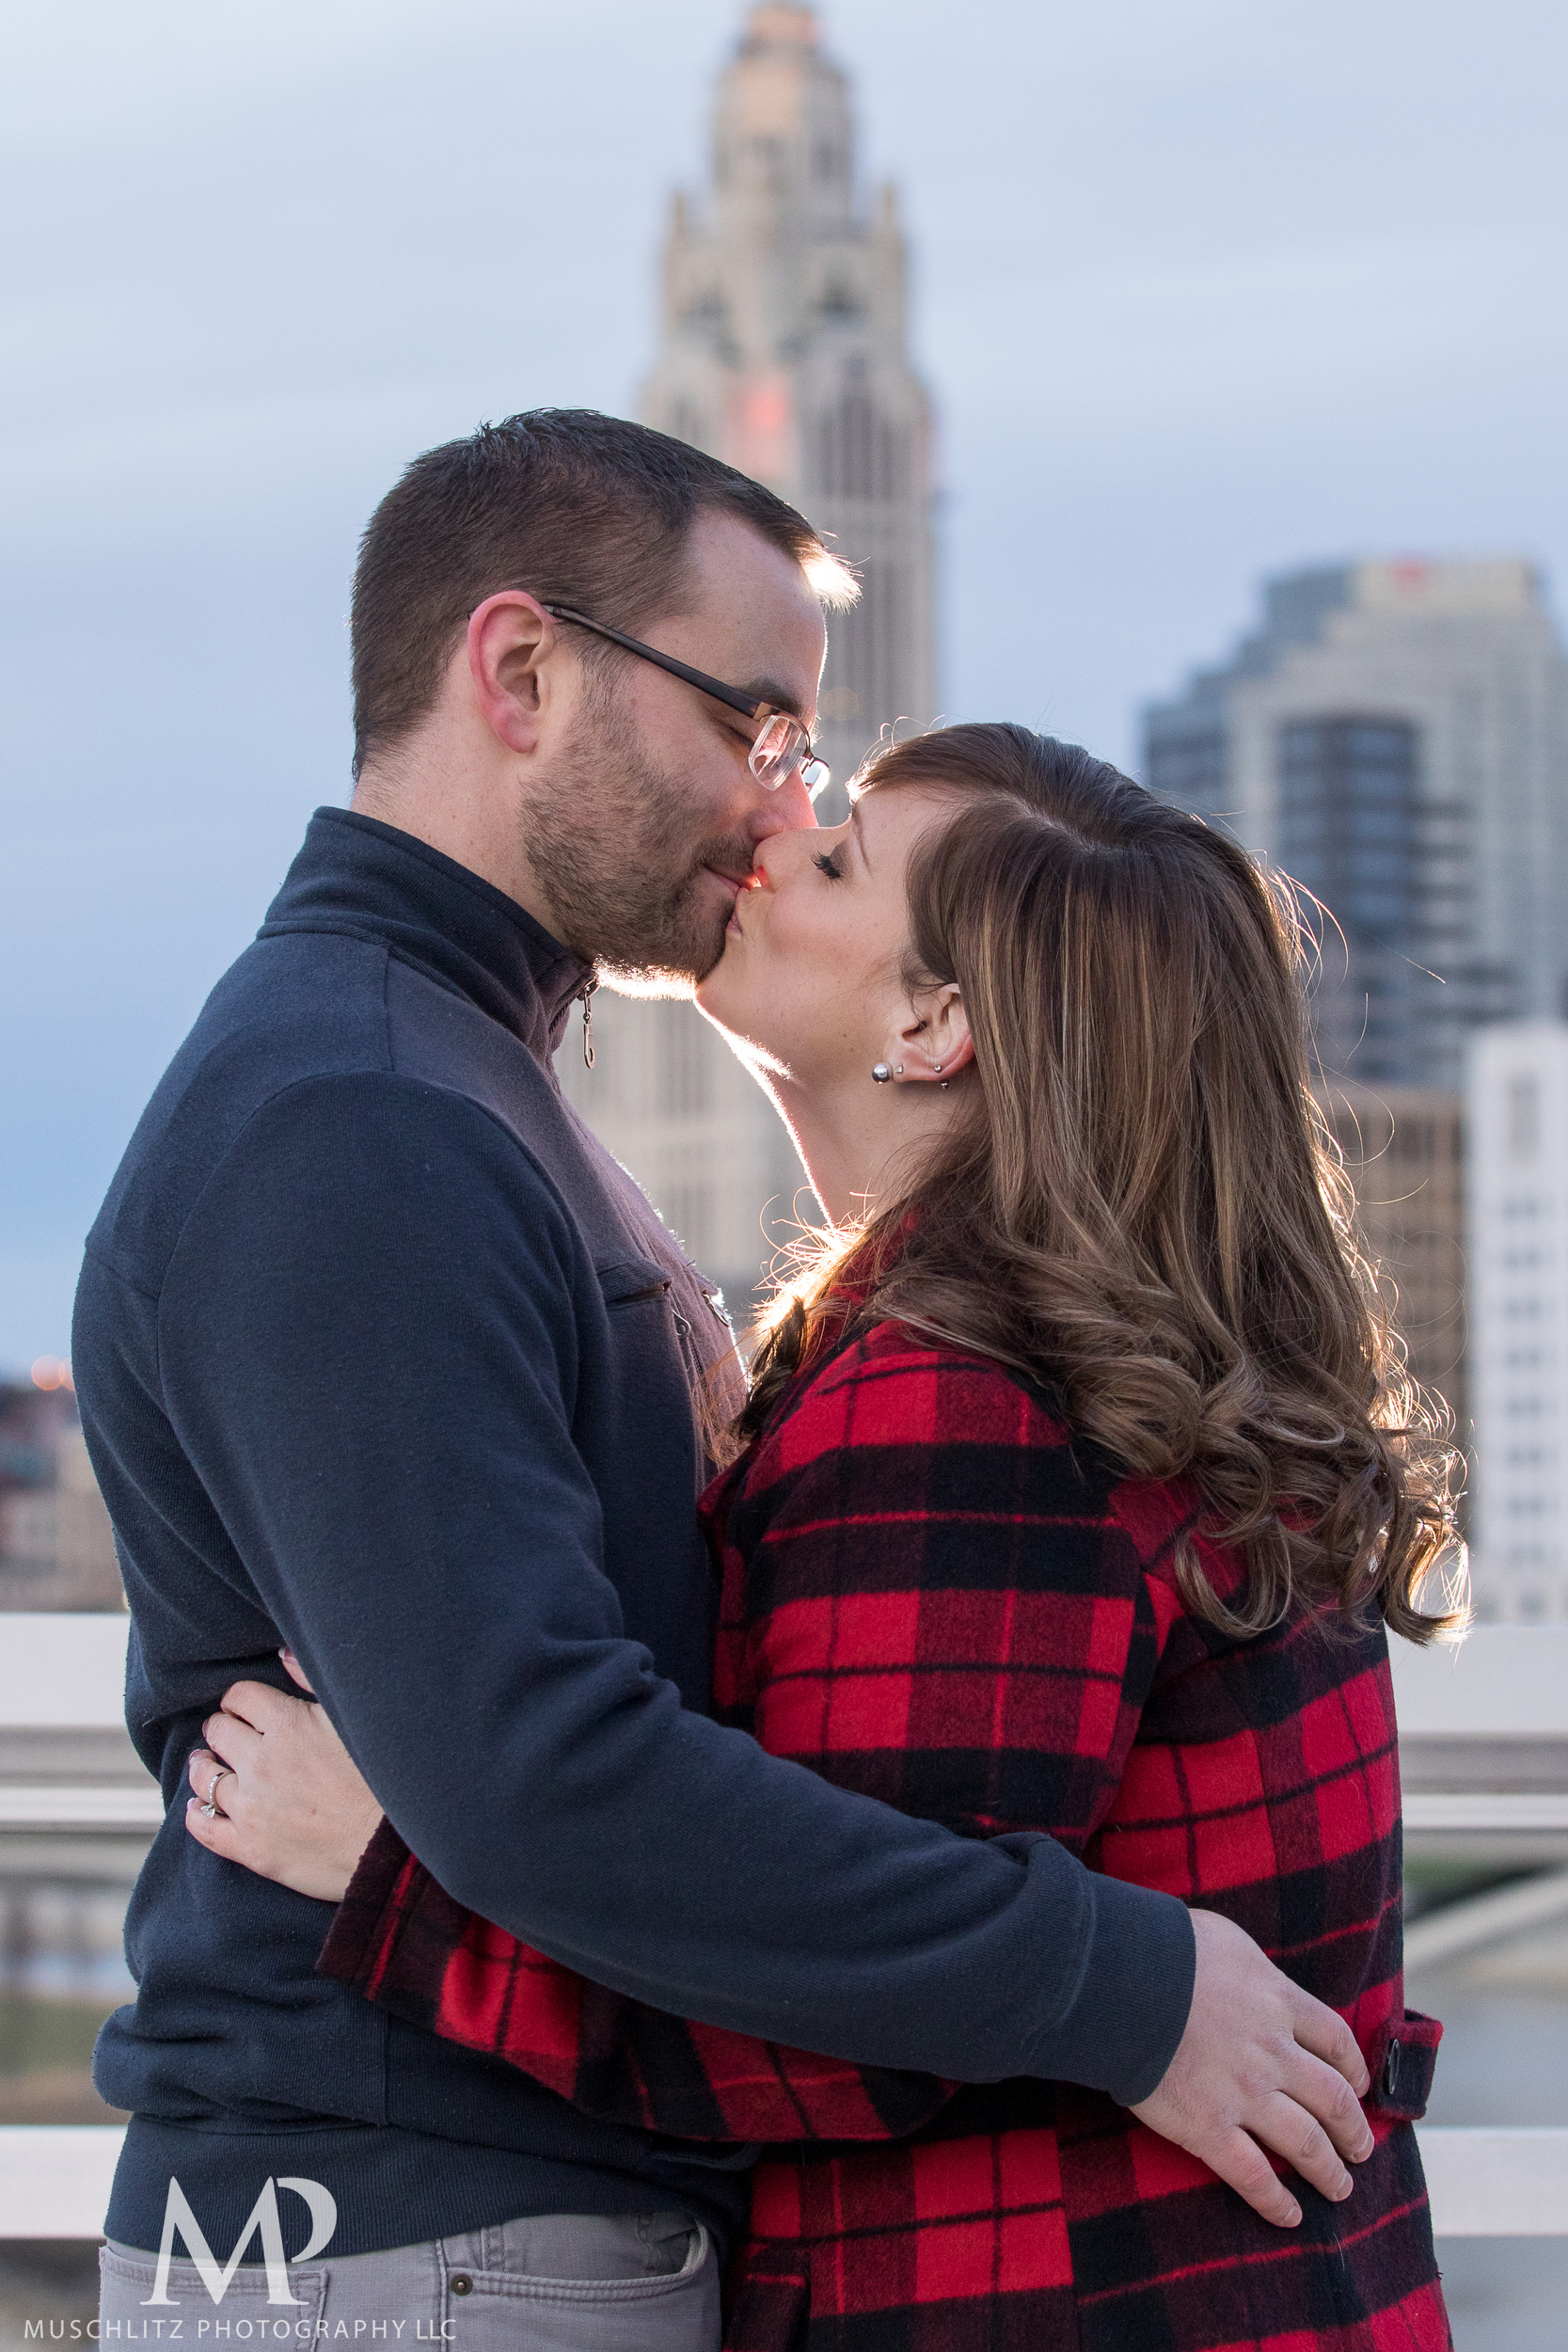 bicentennial-park-engagement-session-holiday-portraits-columbus-ohio-032.JPG